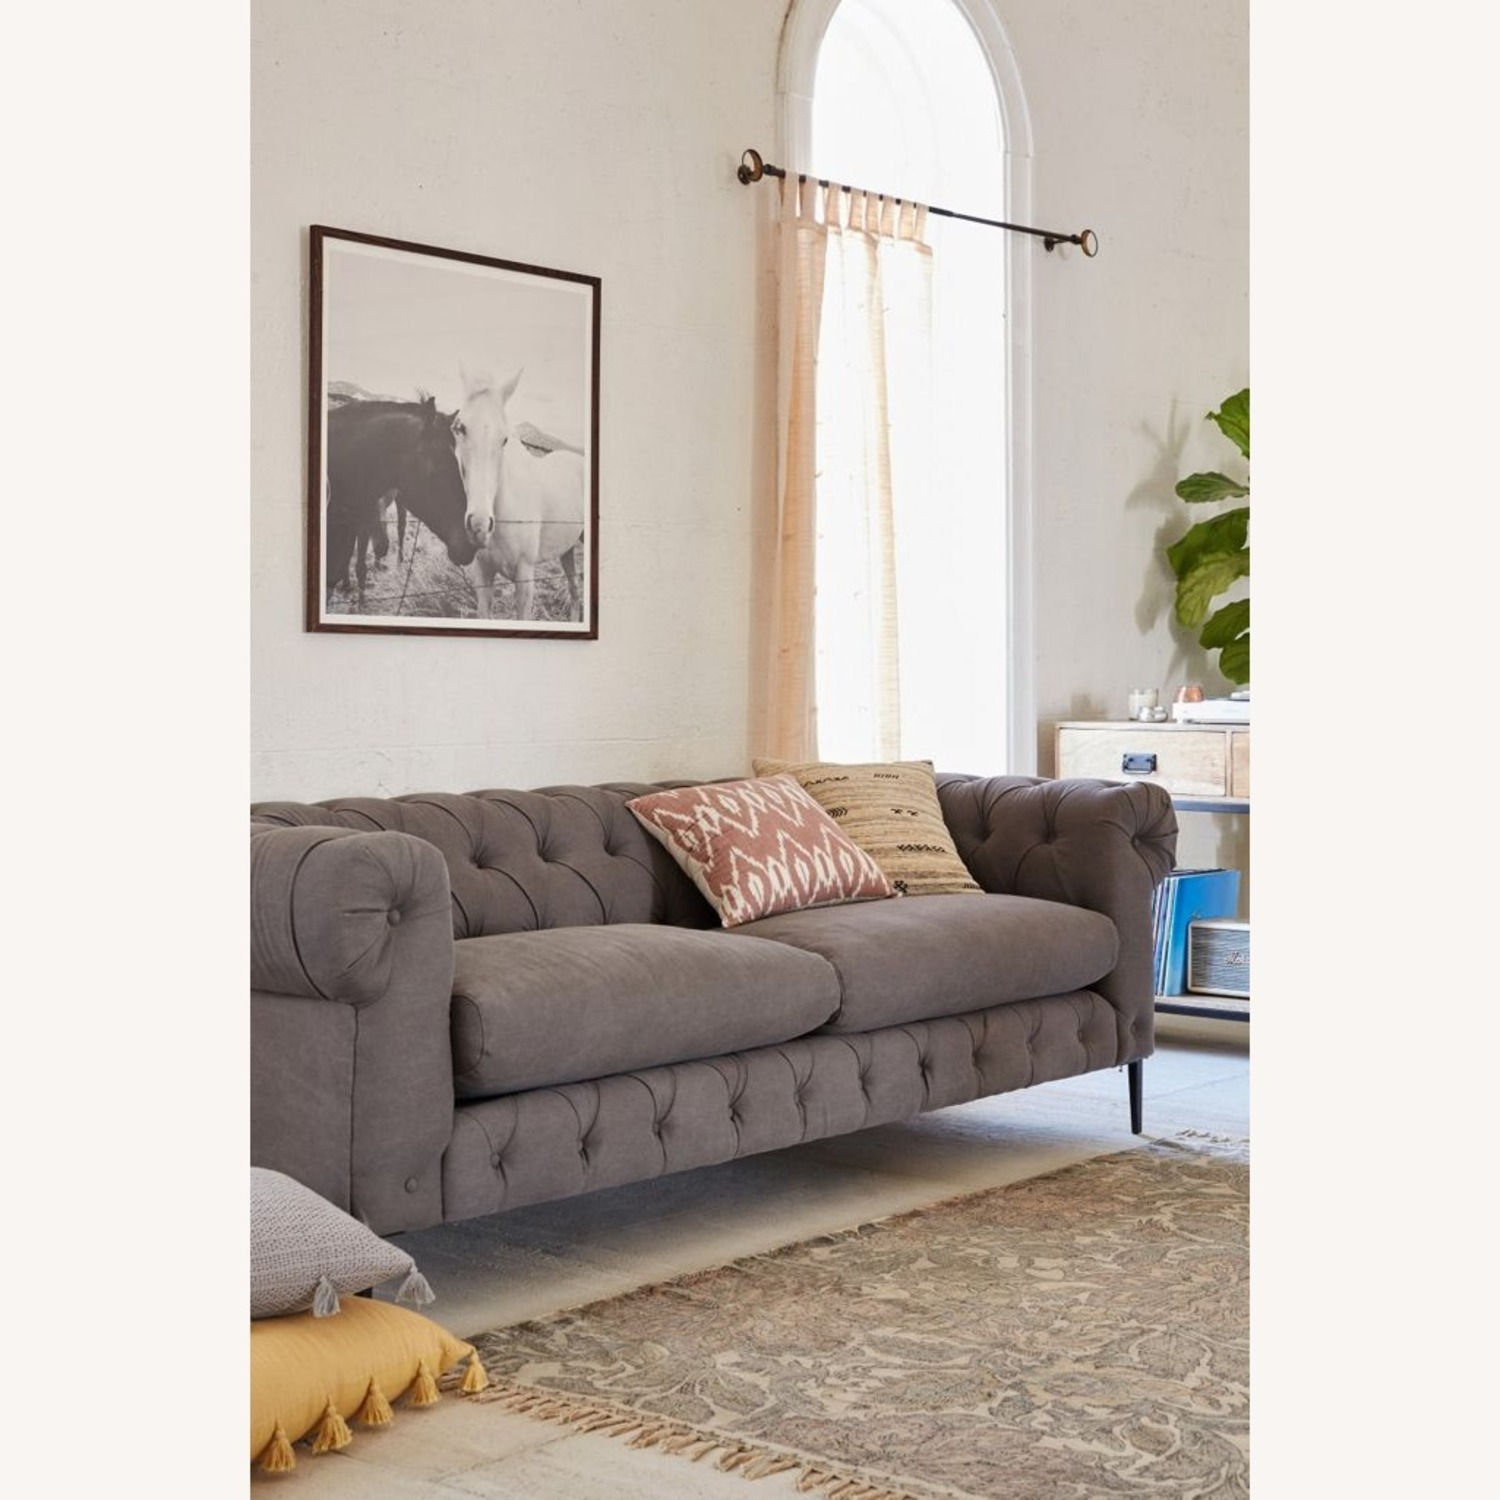 Anthropologie Canal Tufted Sofa - image-0